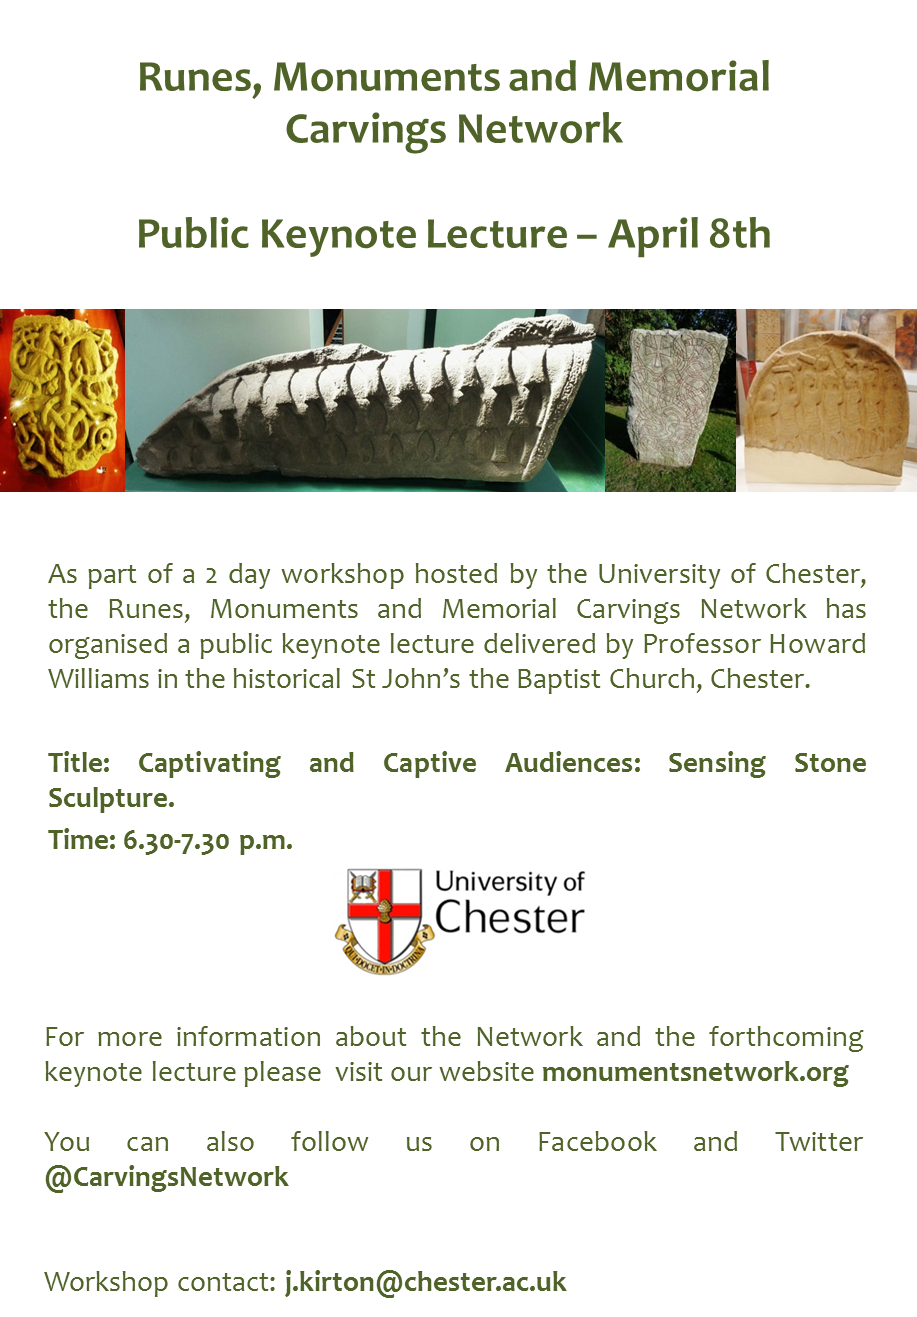 Keynote Lecture Poster